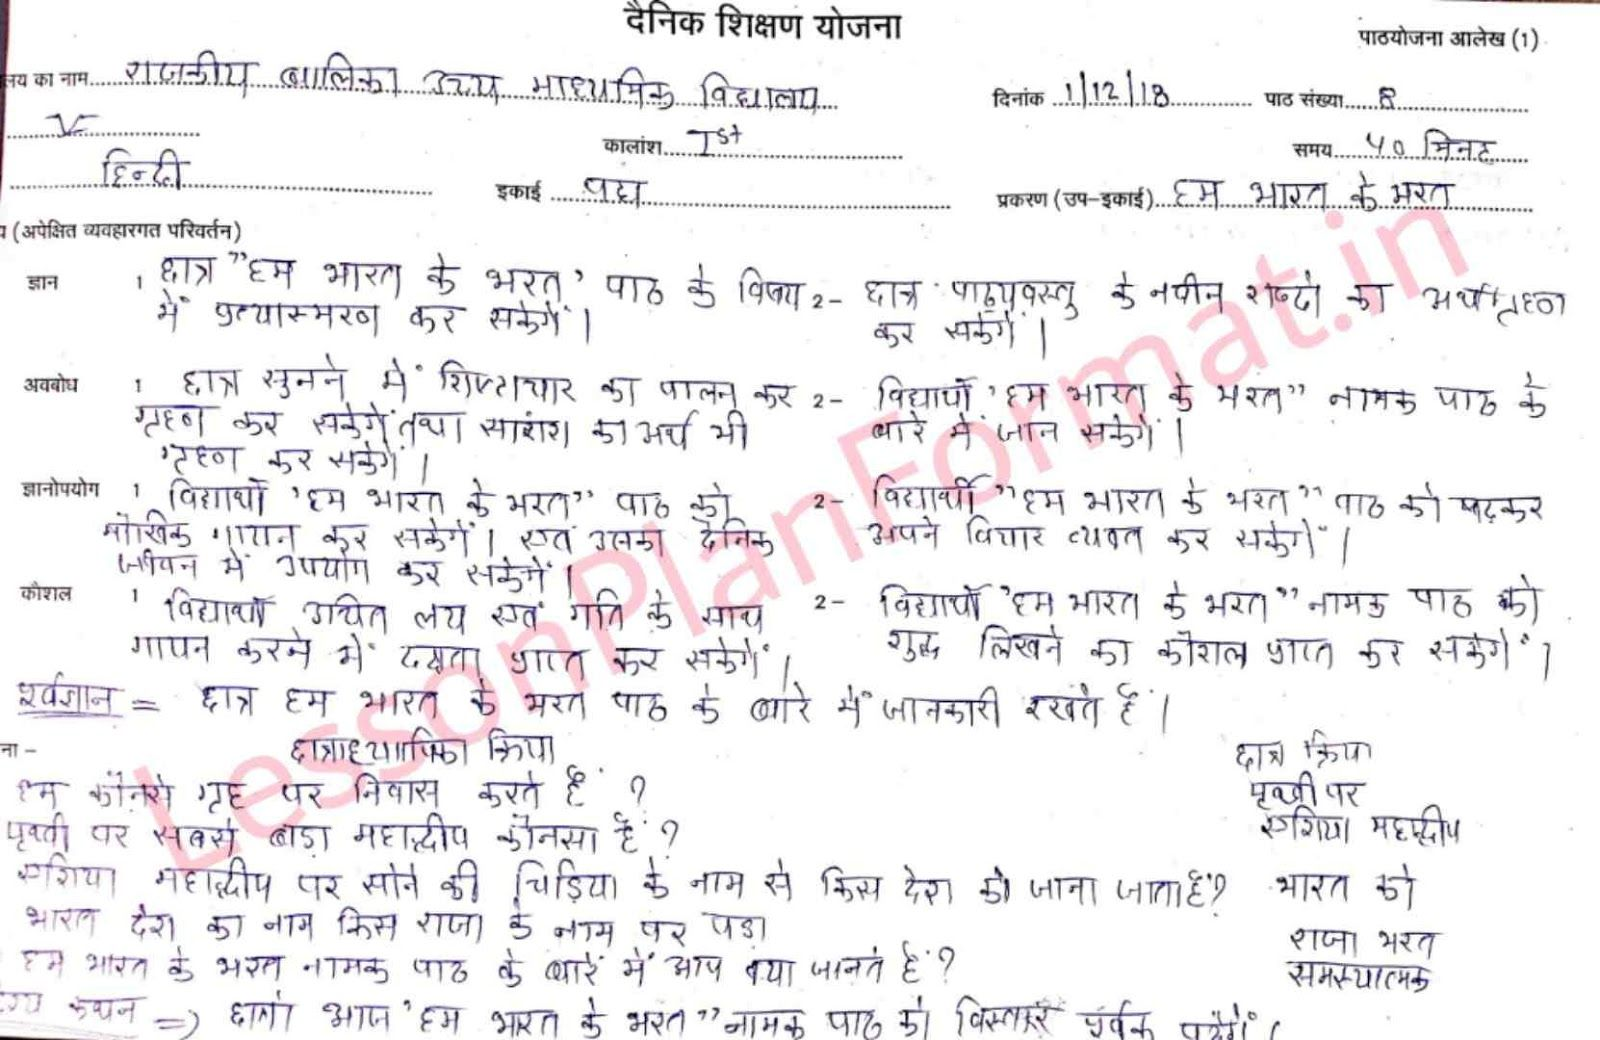 Class 5 Hindi Lesson Plan